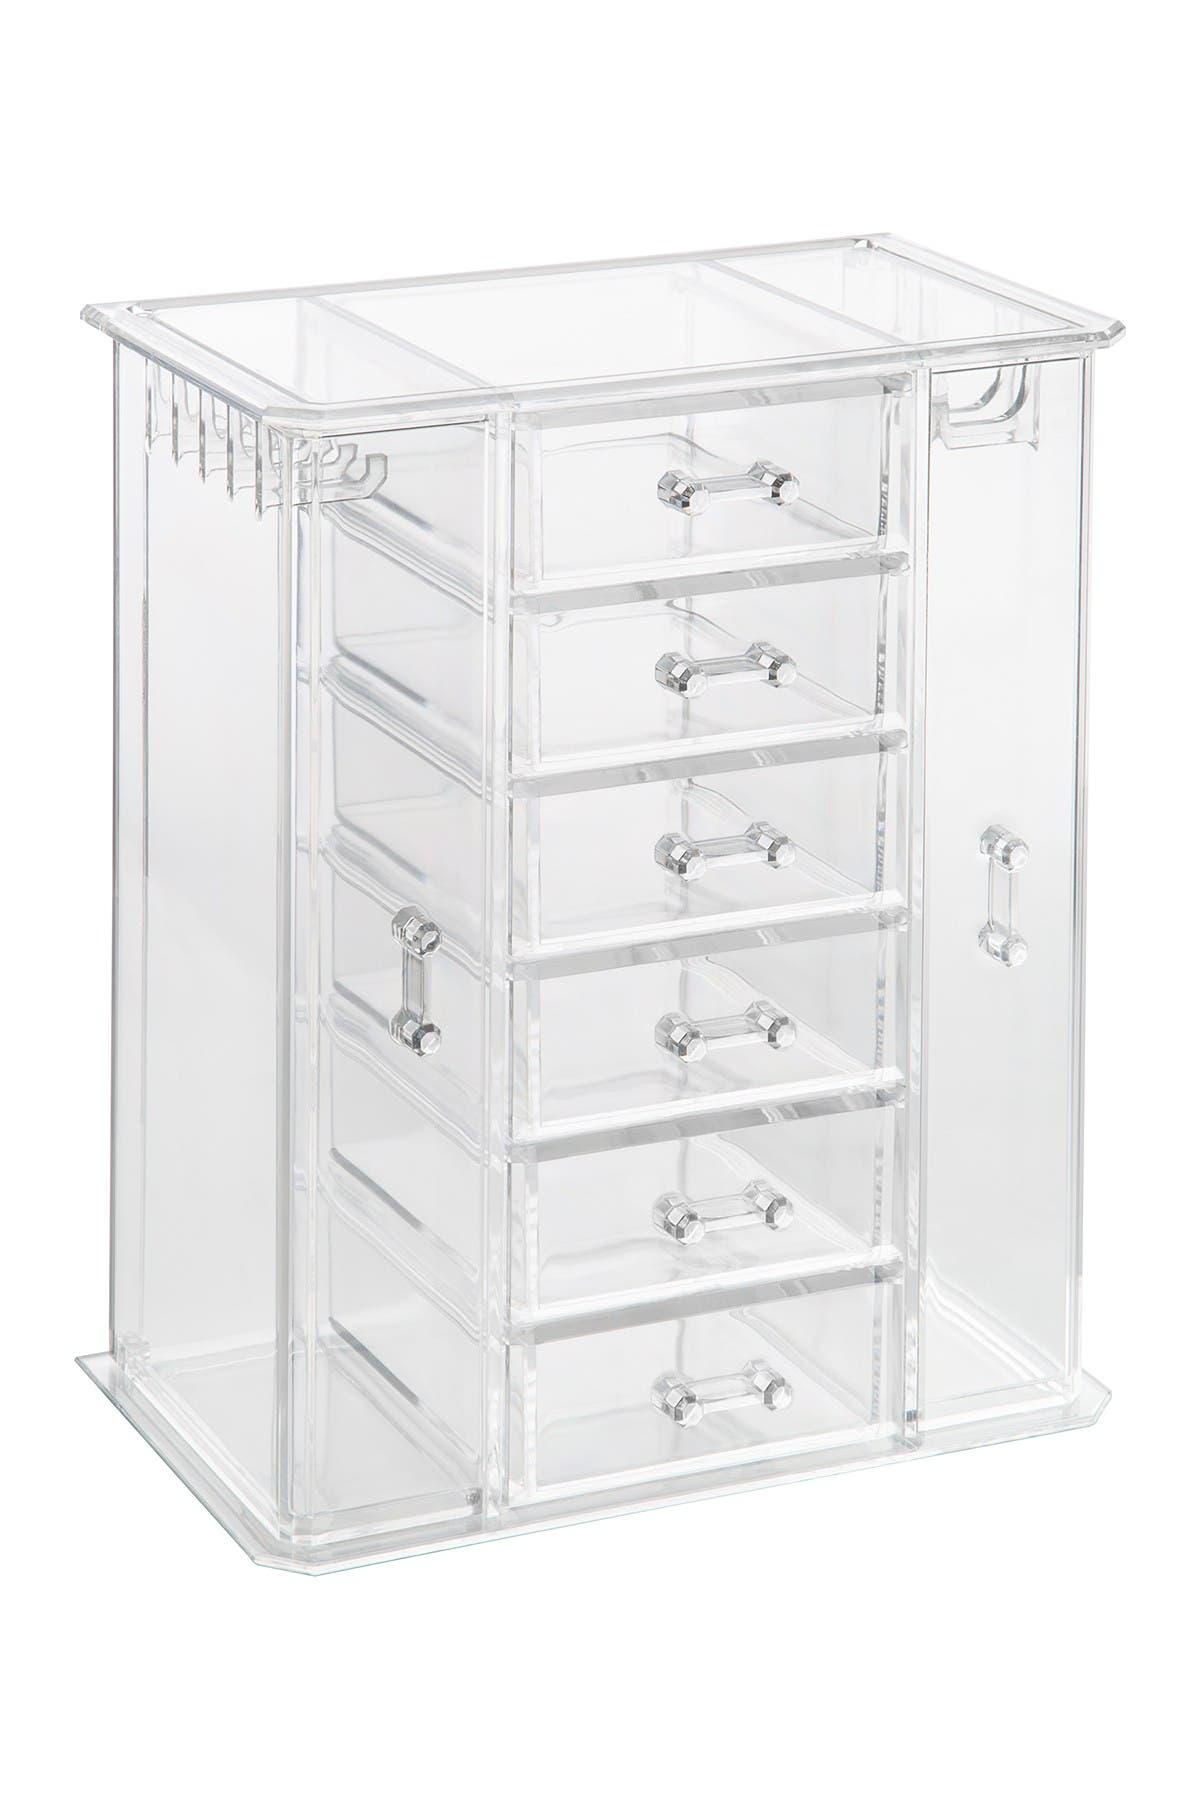 Image of RICHARDS HOMEWARES 6 Drawer Deluxe Organizer